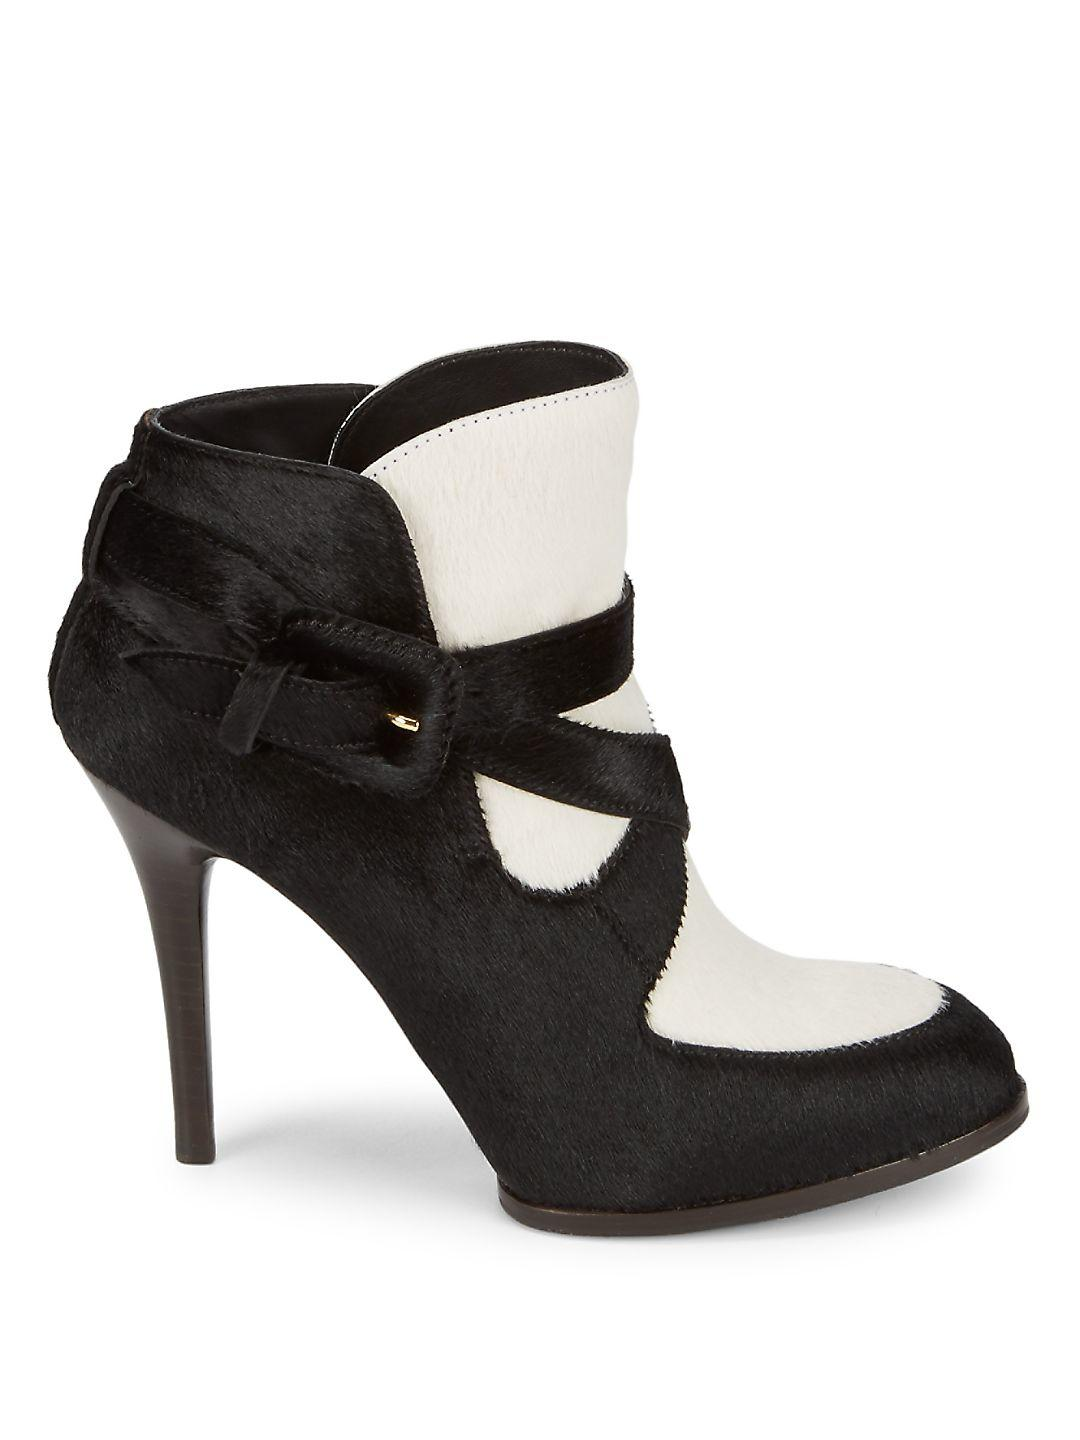 Tod's Leather Strappy Calf Hair Boots in Black